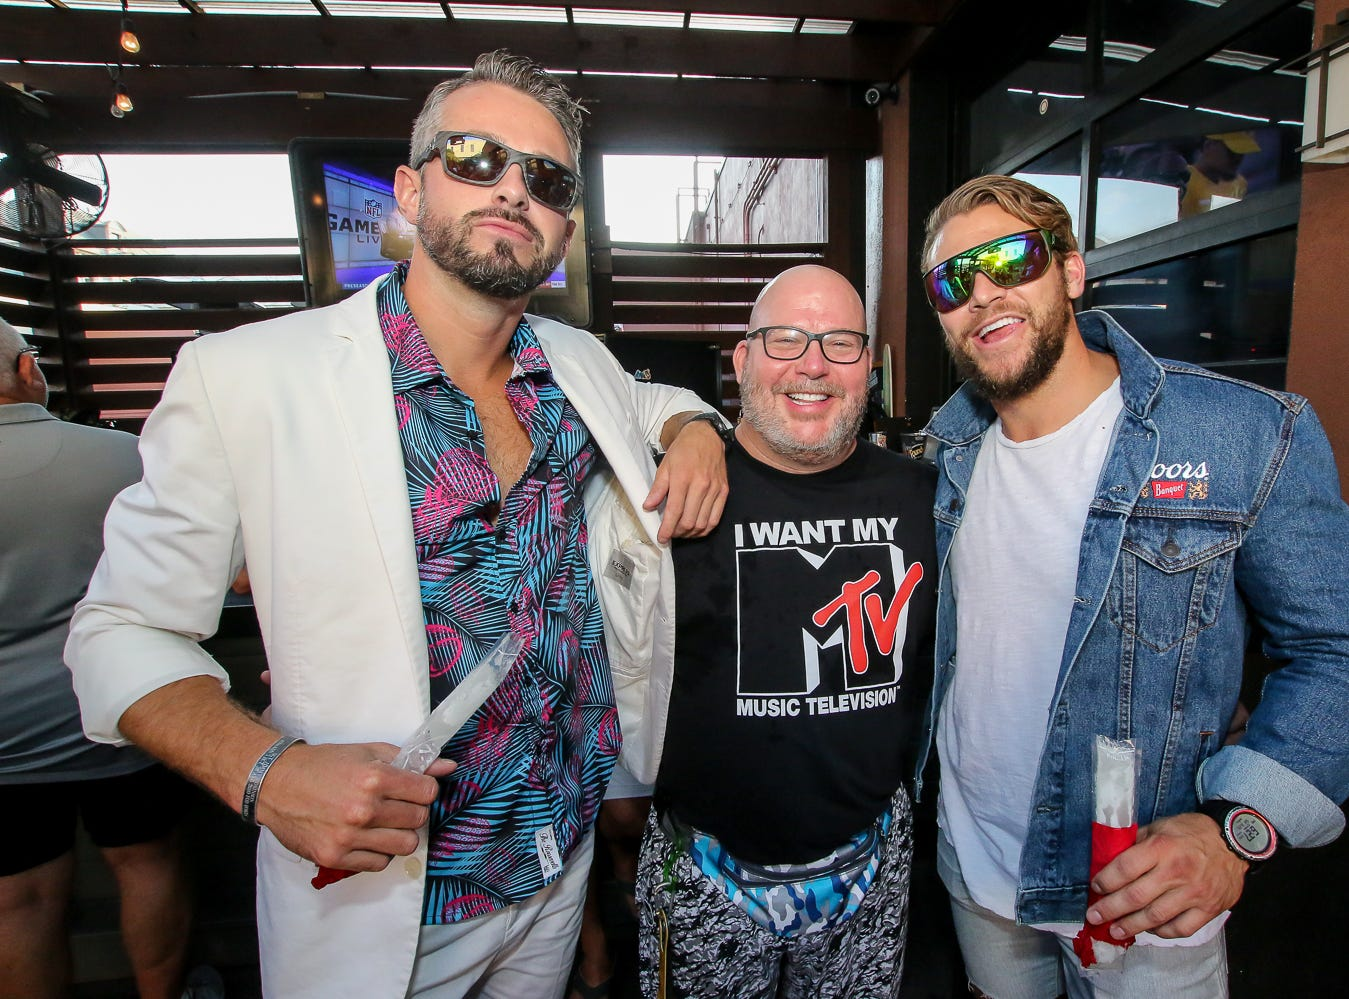 People enjoy the 1980's-themed bar crawl at Blend Lounge, Taco Agave, and World of Beer on Saturday, August 25, 2018.